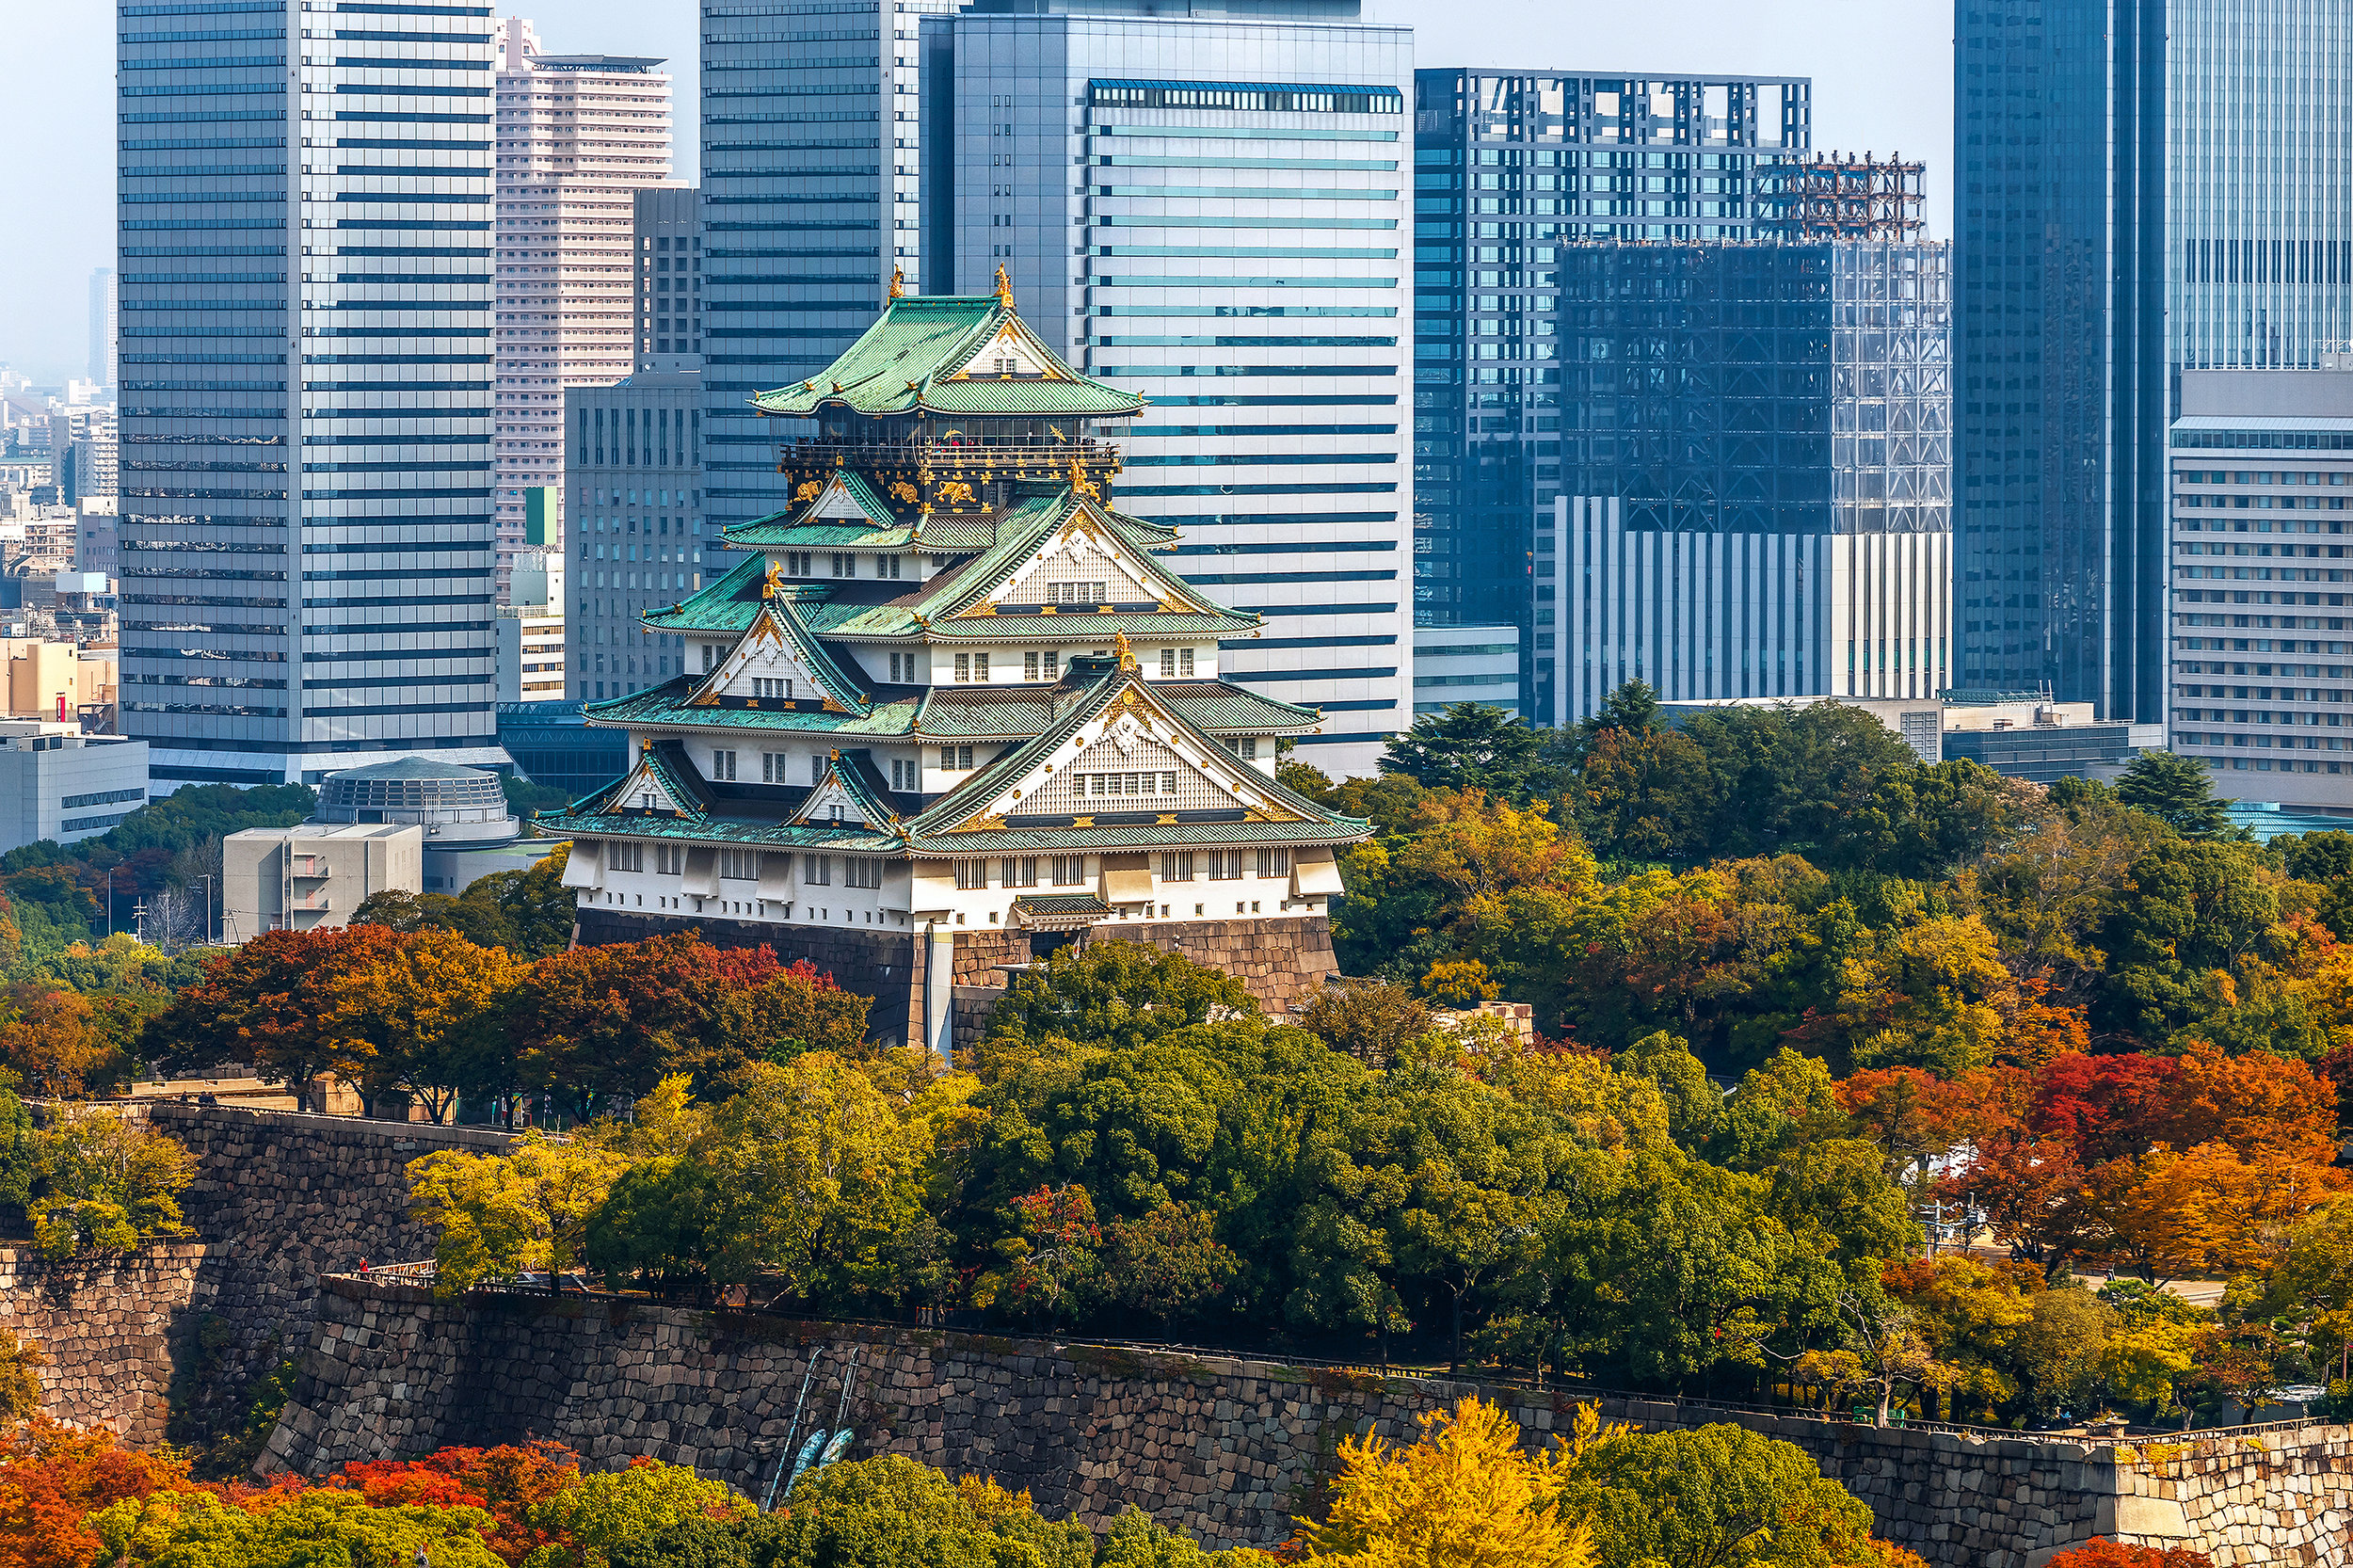 Osaka Castle seems like an anachronism surrounded by modern skyscrapers. It's a visual example of wa (Japanese) and yo (Western) coexisting in the same microverse that is Japan.